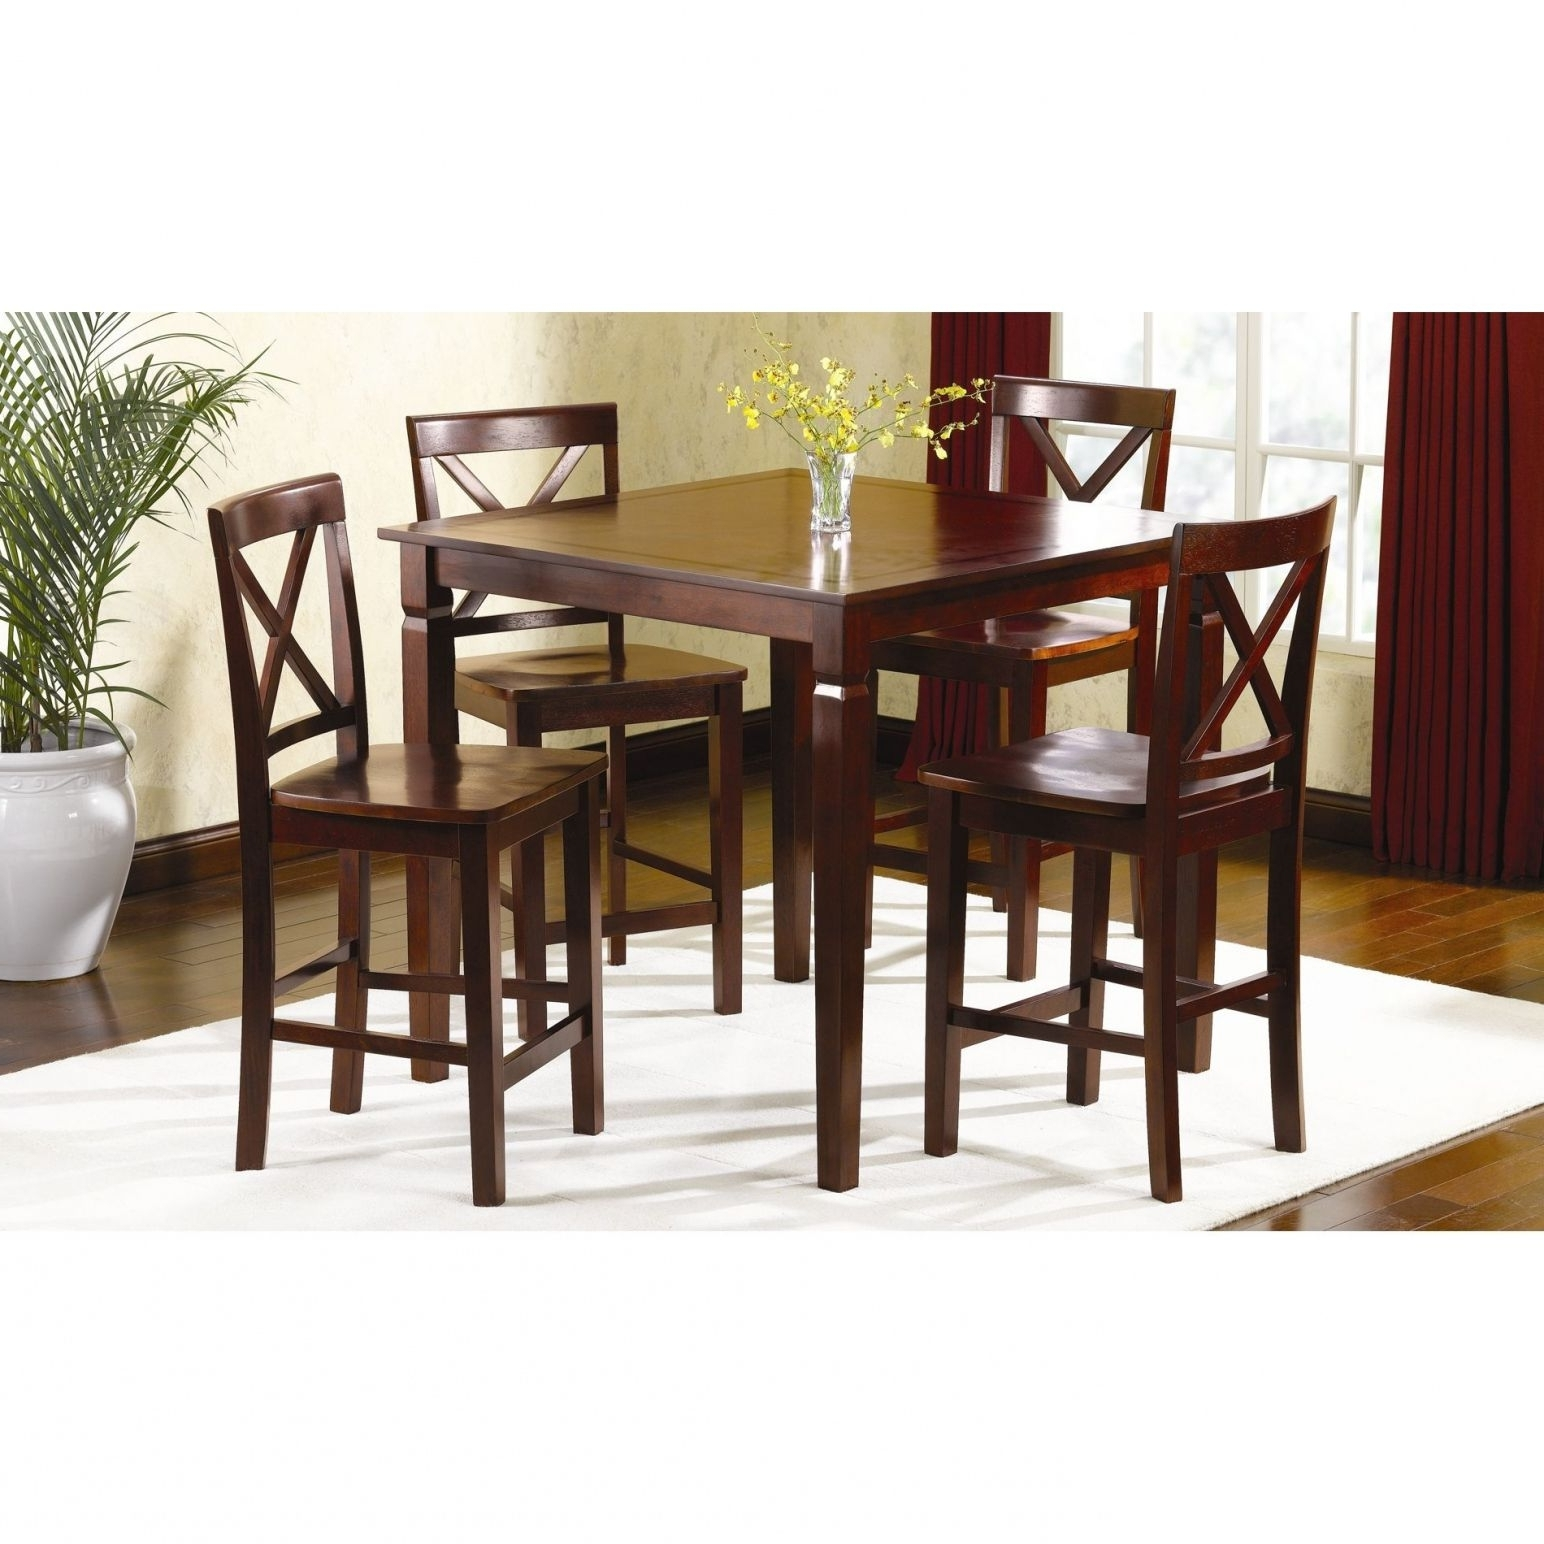 100+ Kmart Kitchen Tables And Chairs – Kitchen Design Ideas Images Throughout Best And Newest Pierce 5 Piece Counter Sets (View 1 of 25)